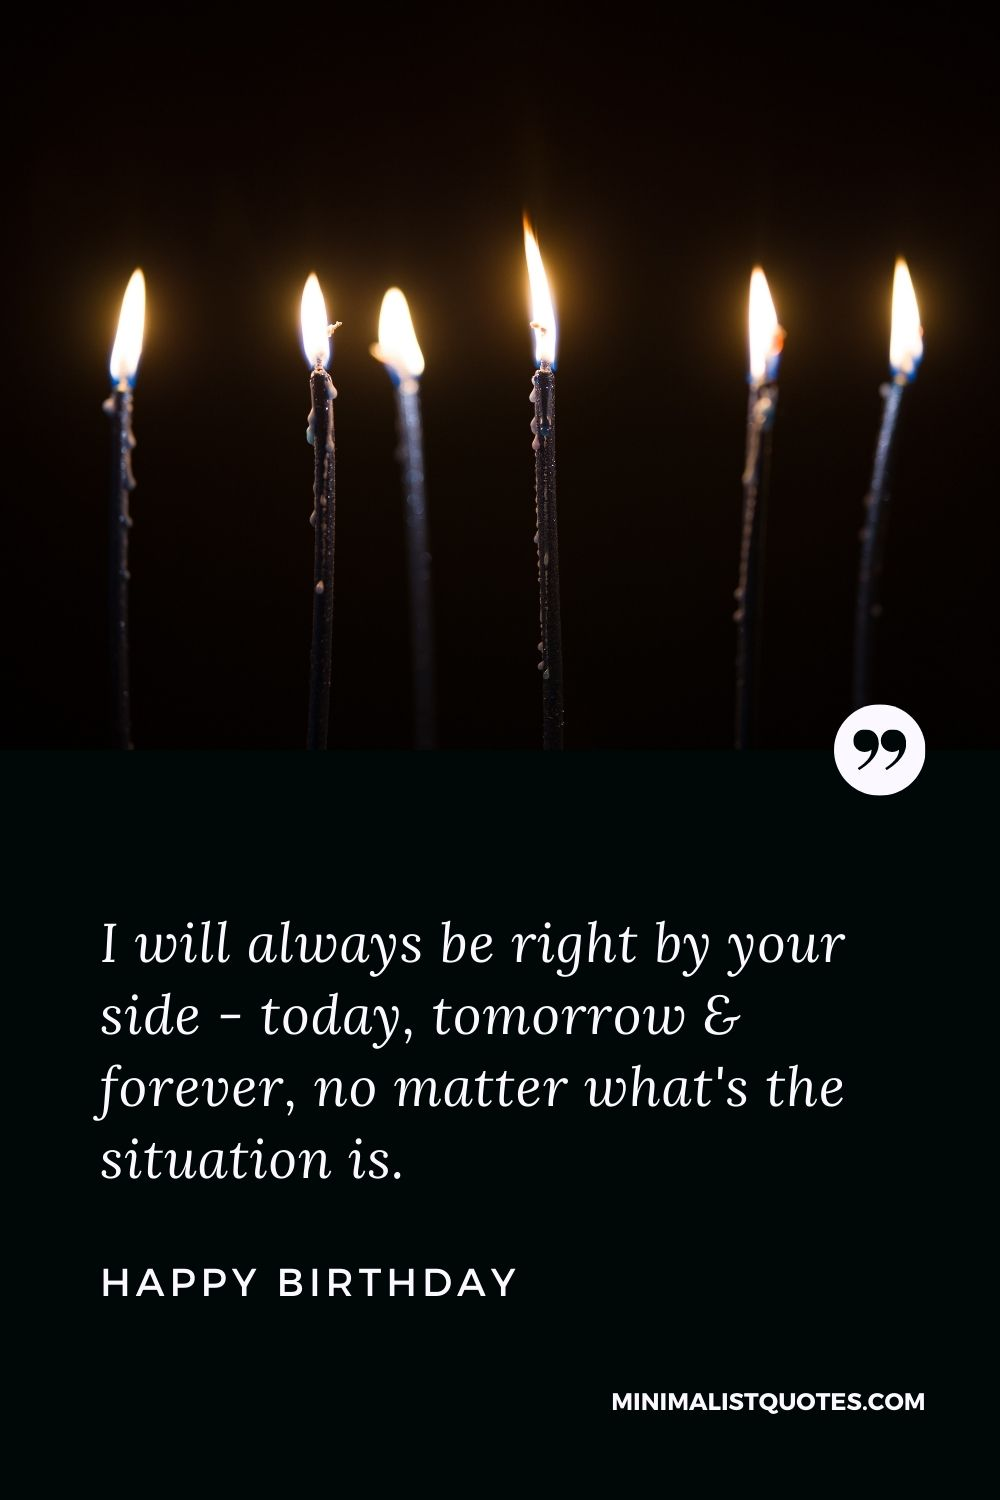 Birthday wish, message & quote with HD image: I will always be right by your side - today, tomorrow & forever, no matter what's the situationis. Happy Birthday!